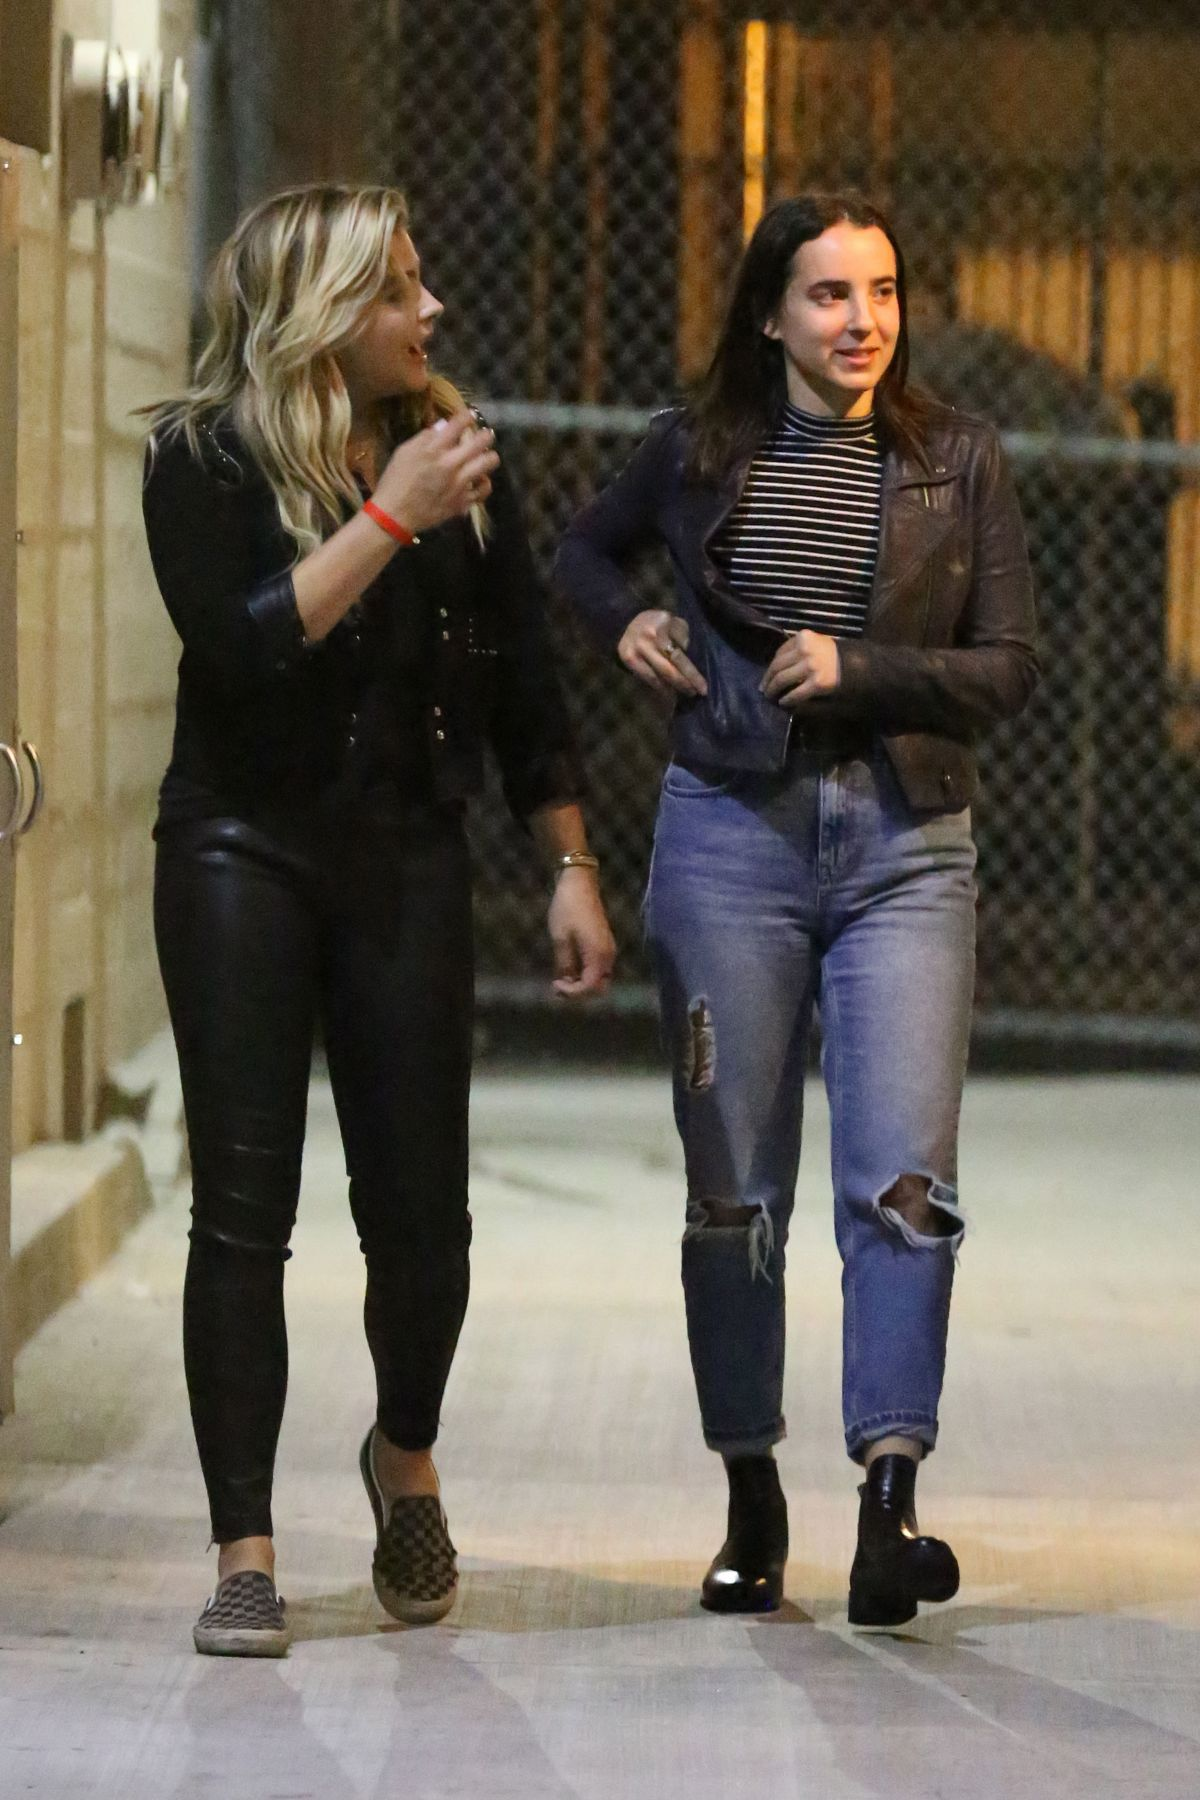 db8eb2dc9c CHLOE MORETZ and MEGHAN TRAINOR at Warwick Nightclub in Hollywood 06/15/2016